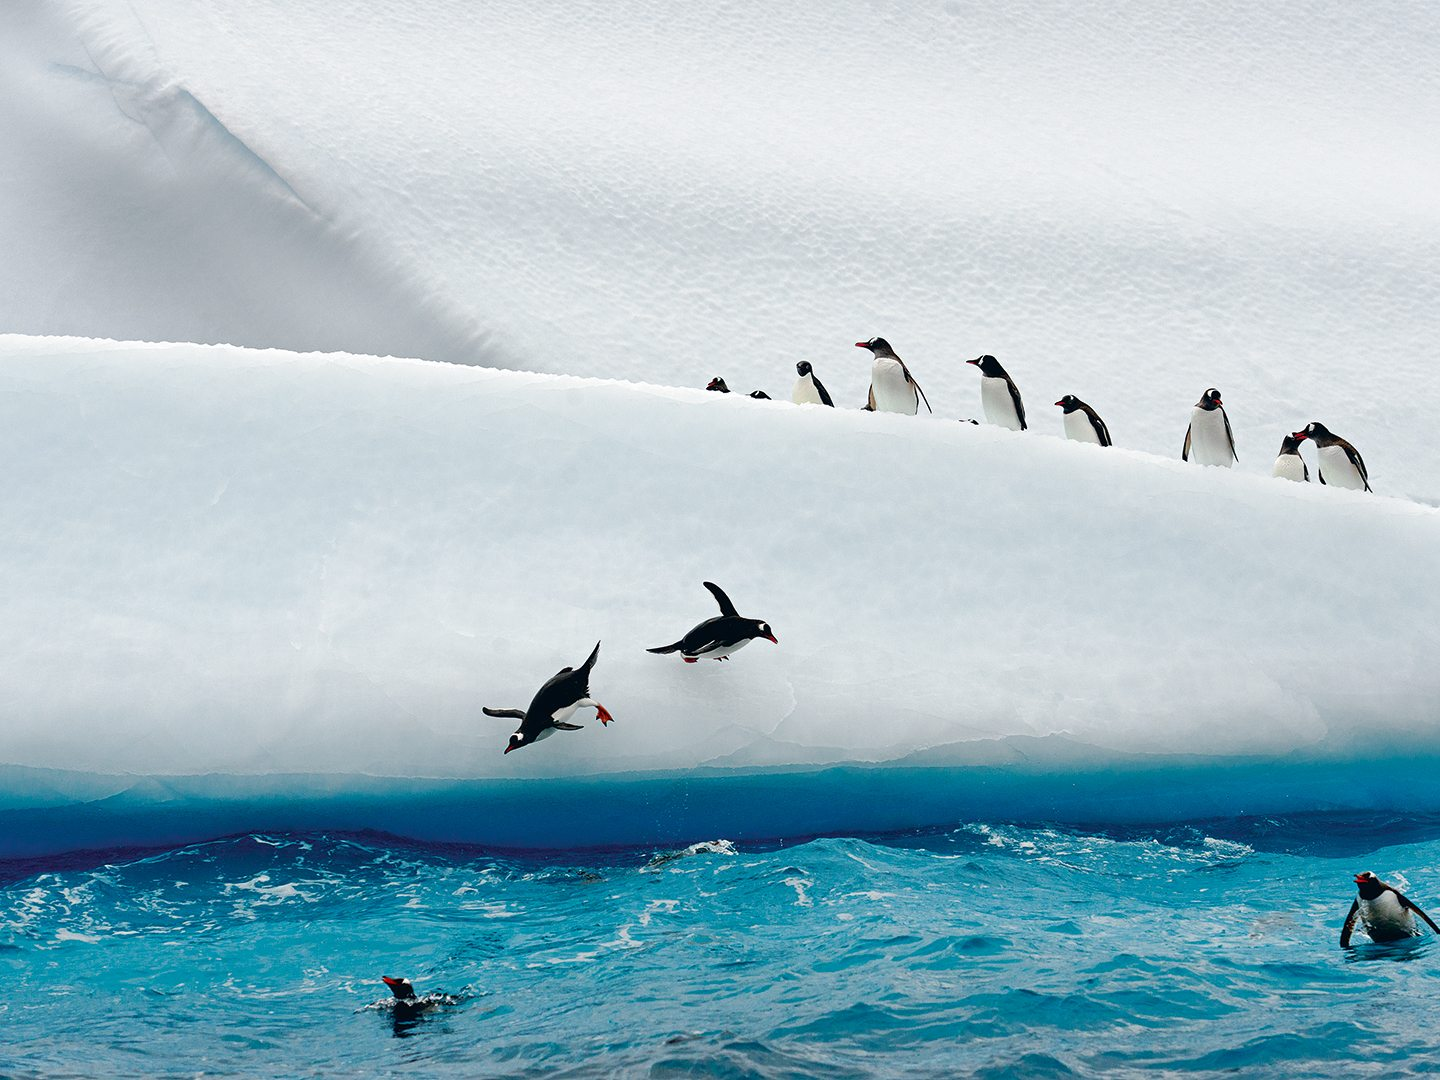 Gentoo penguins fling themselves from an iceberg into frigid Antarctic waters. Photo: Cotton Coulson and Sisse Brimberg